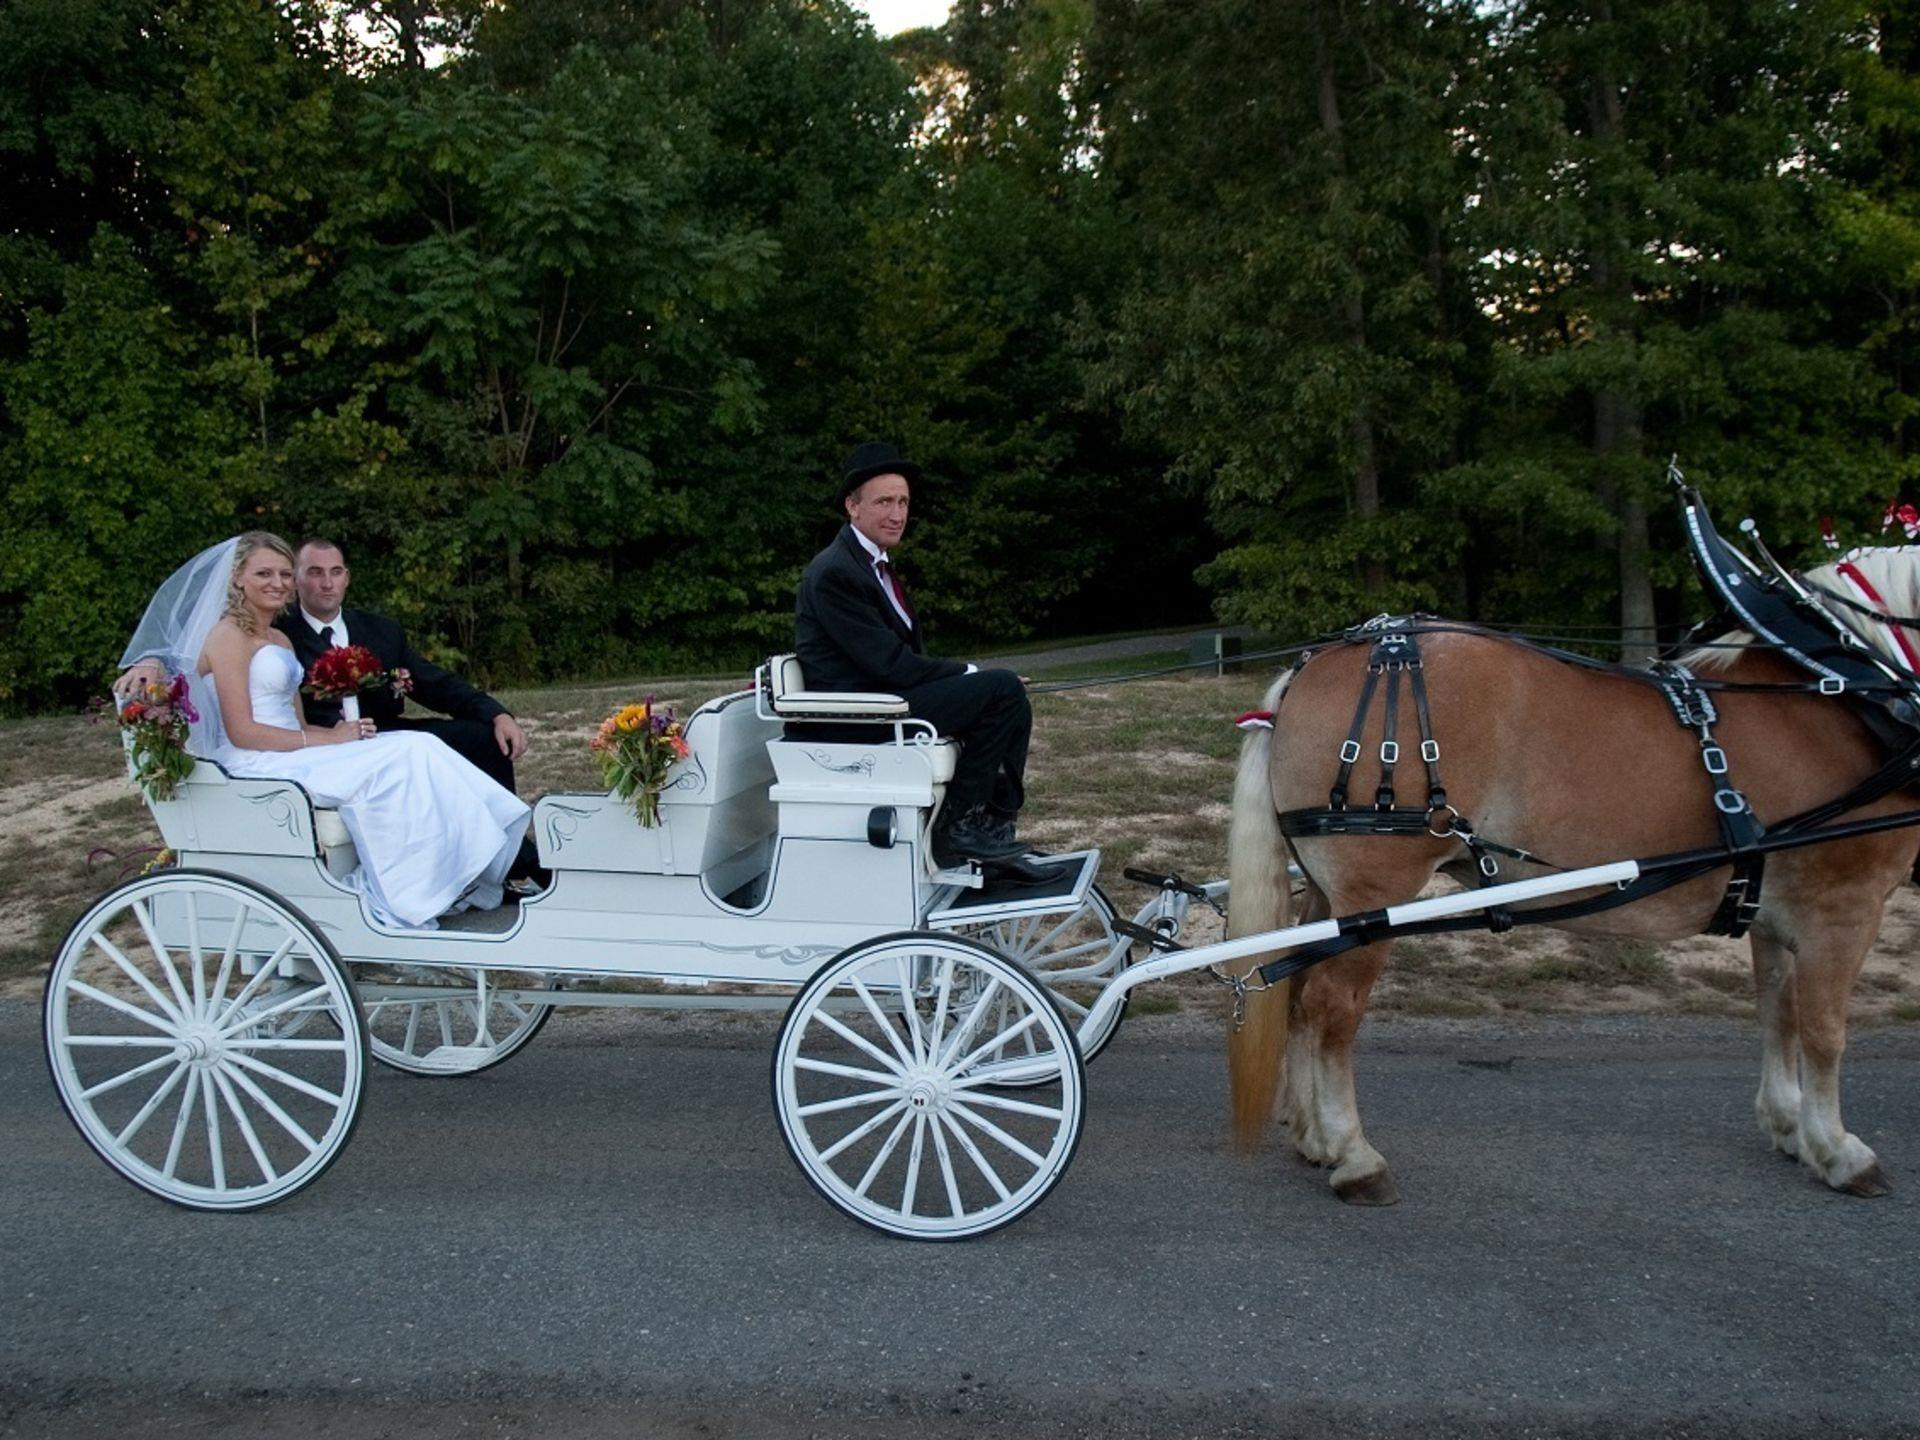 Bride and groom in a carriage being pulled by a horse